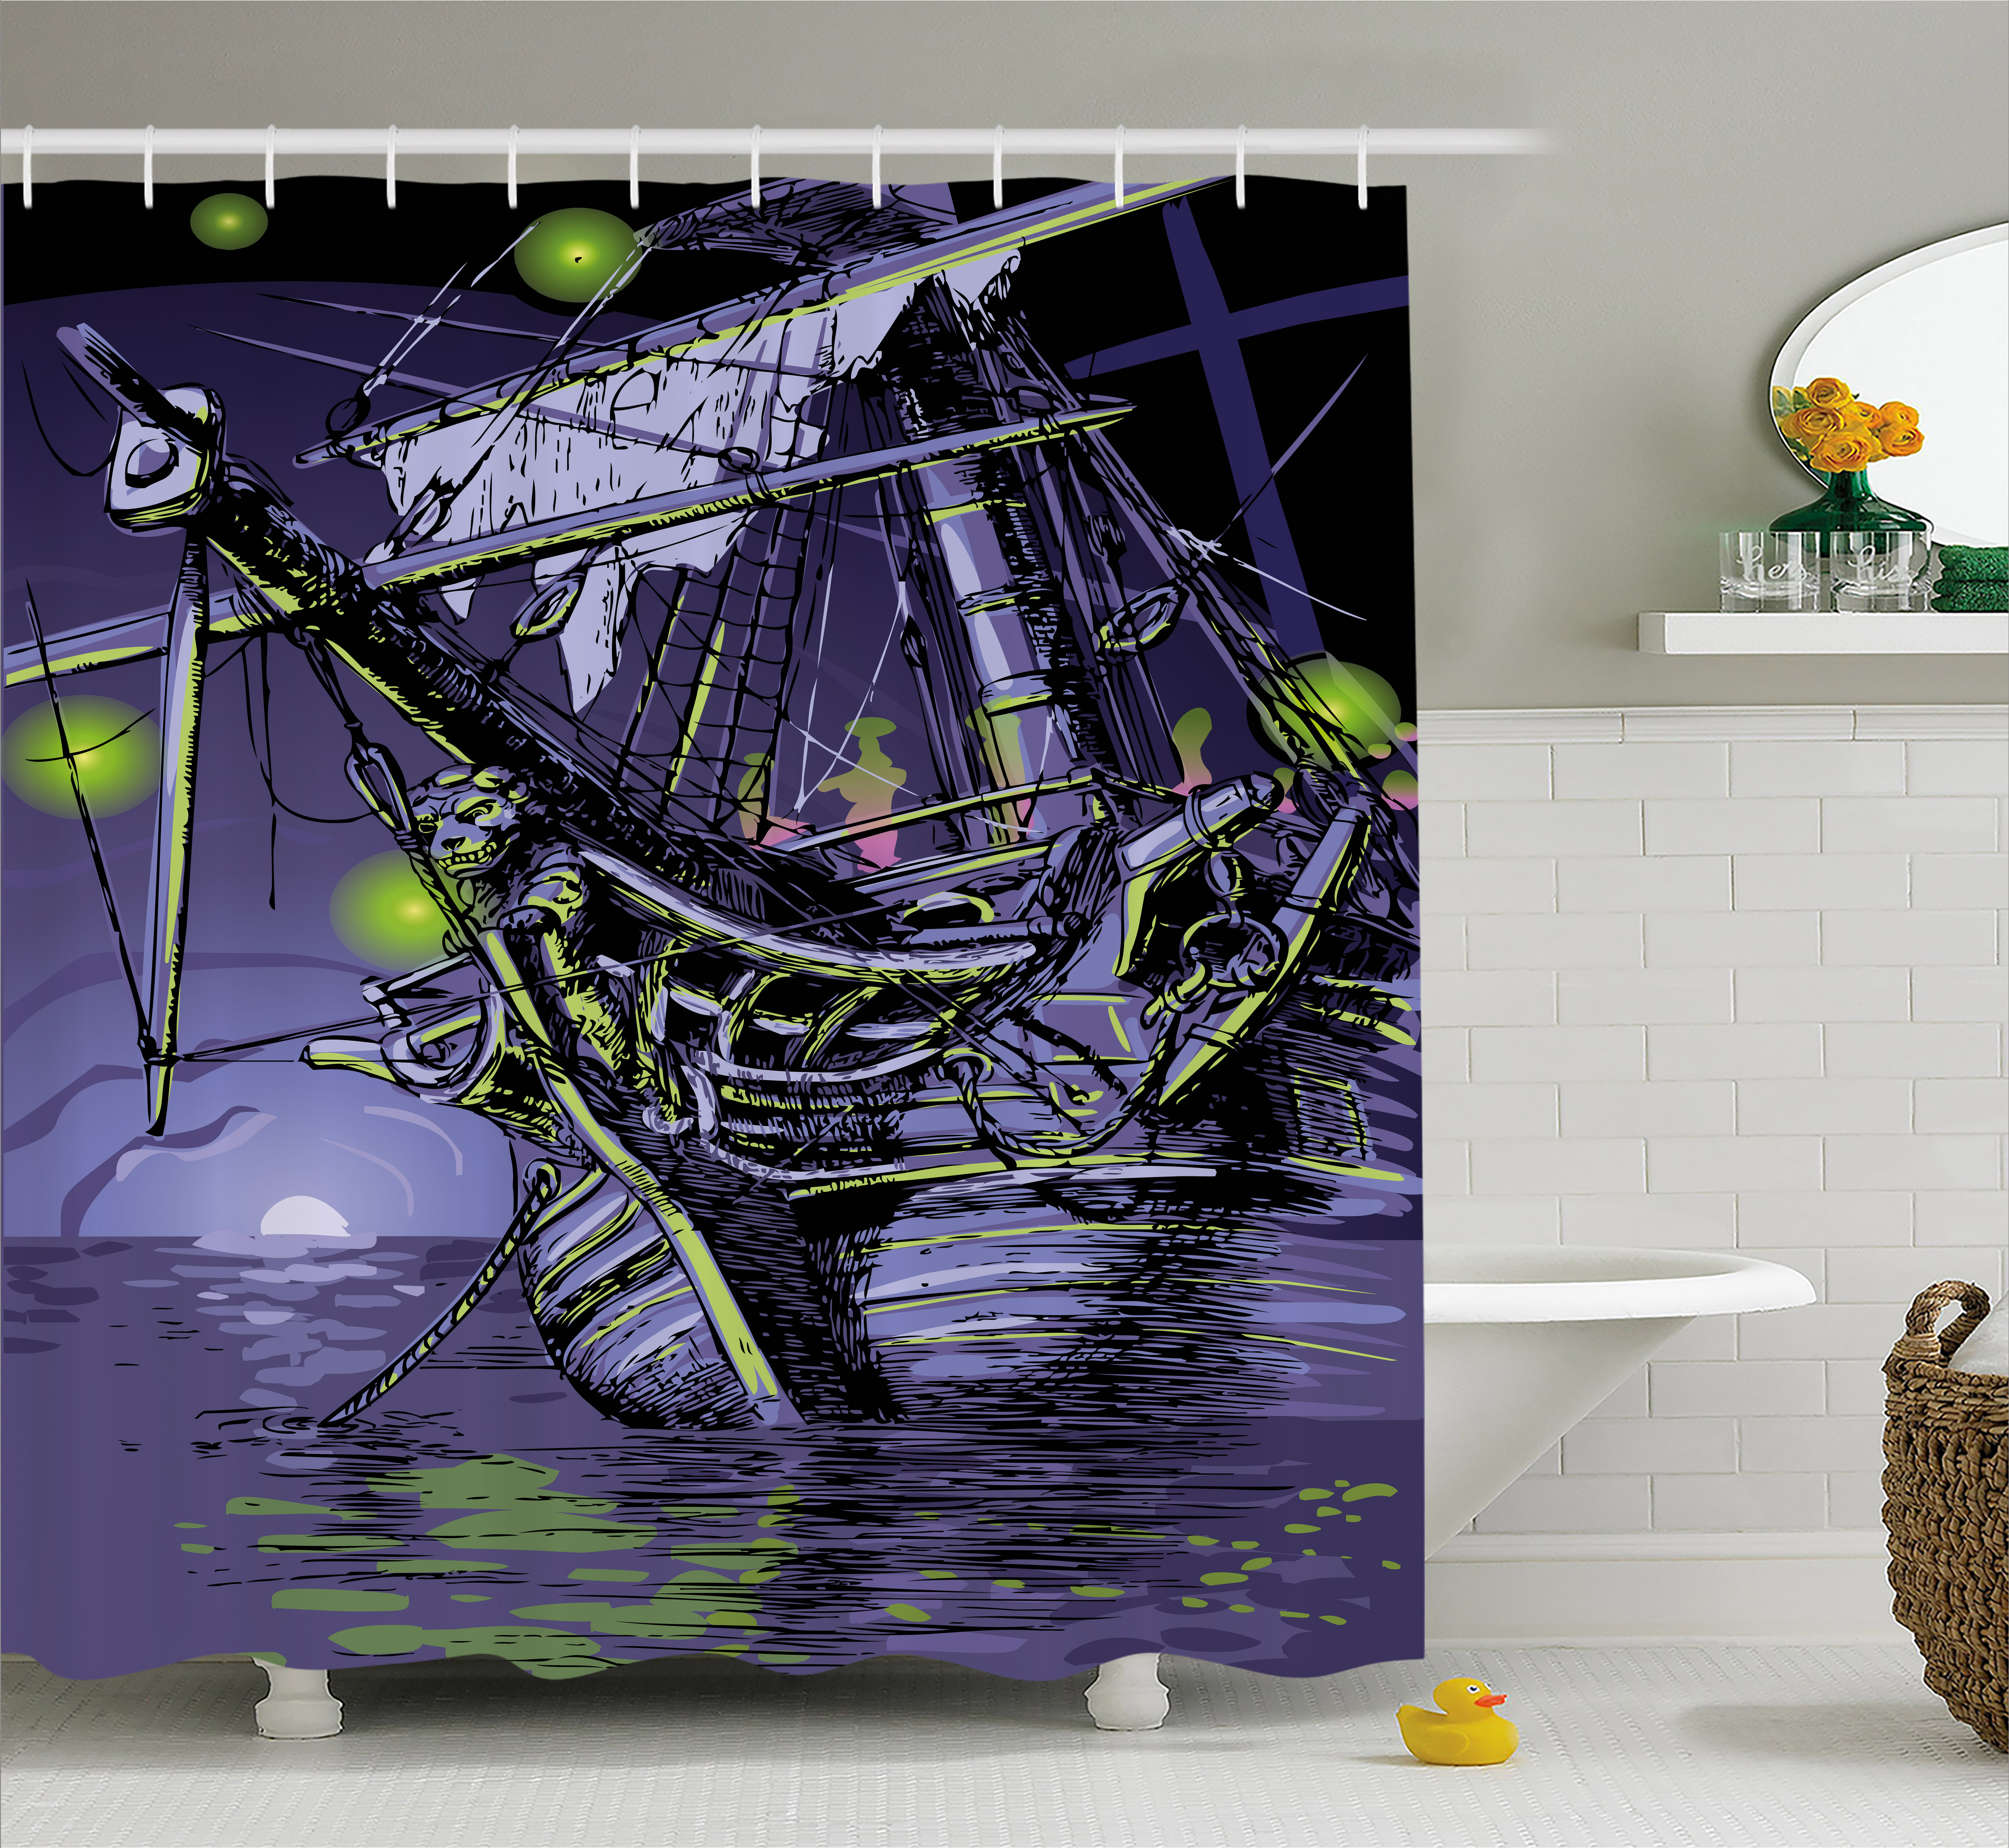 Pirate Ship Shower Curtain, Ghost Ship On Fantasy Caribbean Ocean Adventure  Island Haunted Vessel,